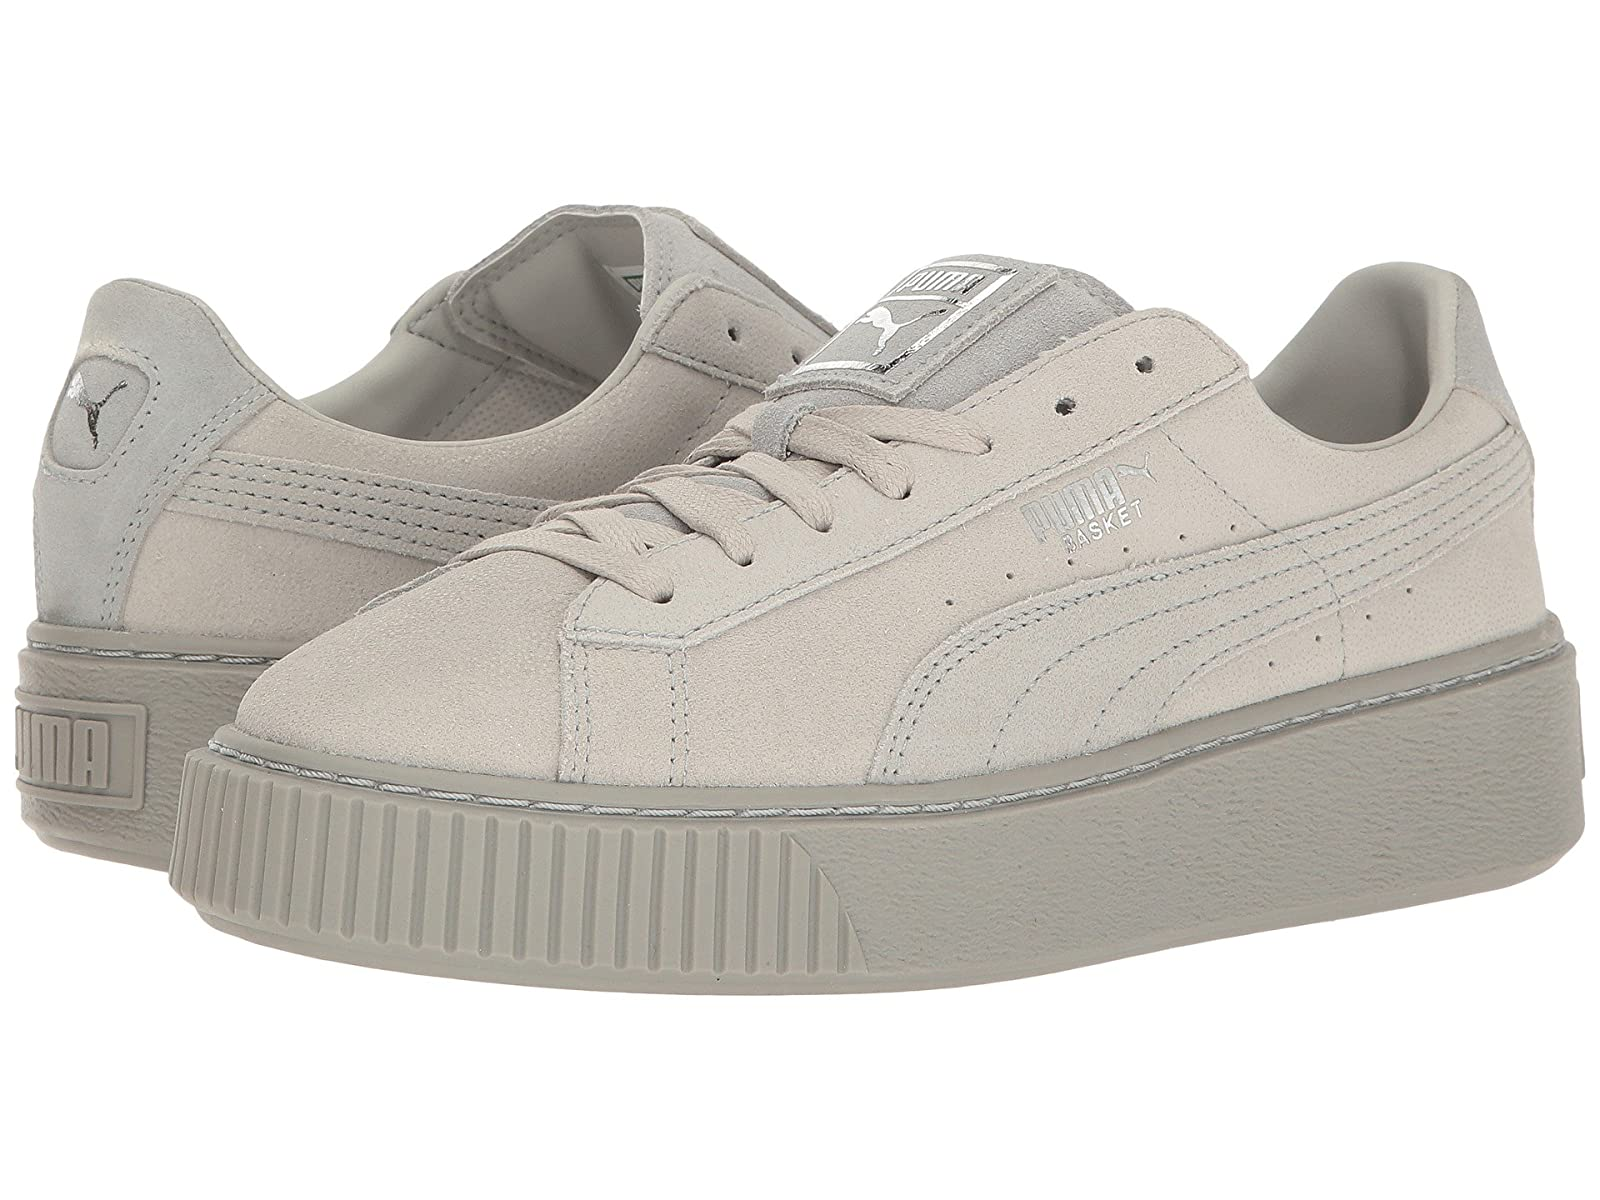 PUMA Puma Platform ResetCheap and distinctive eye-catching shoes